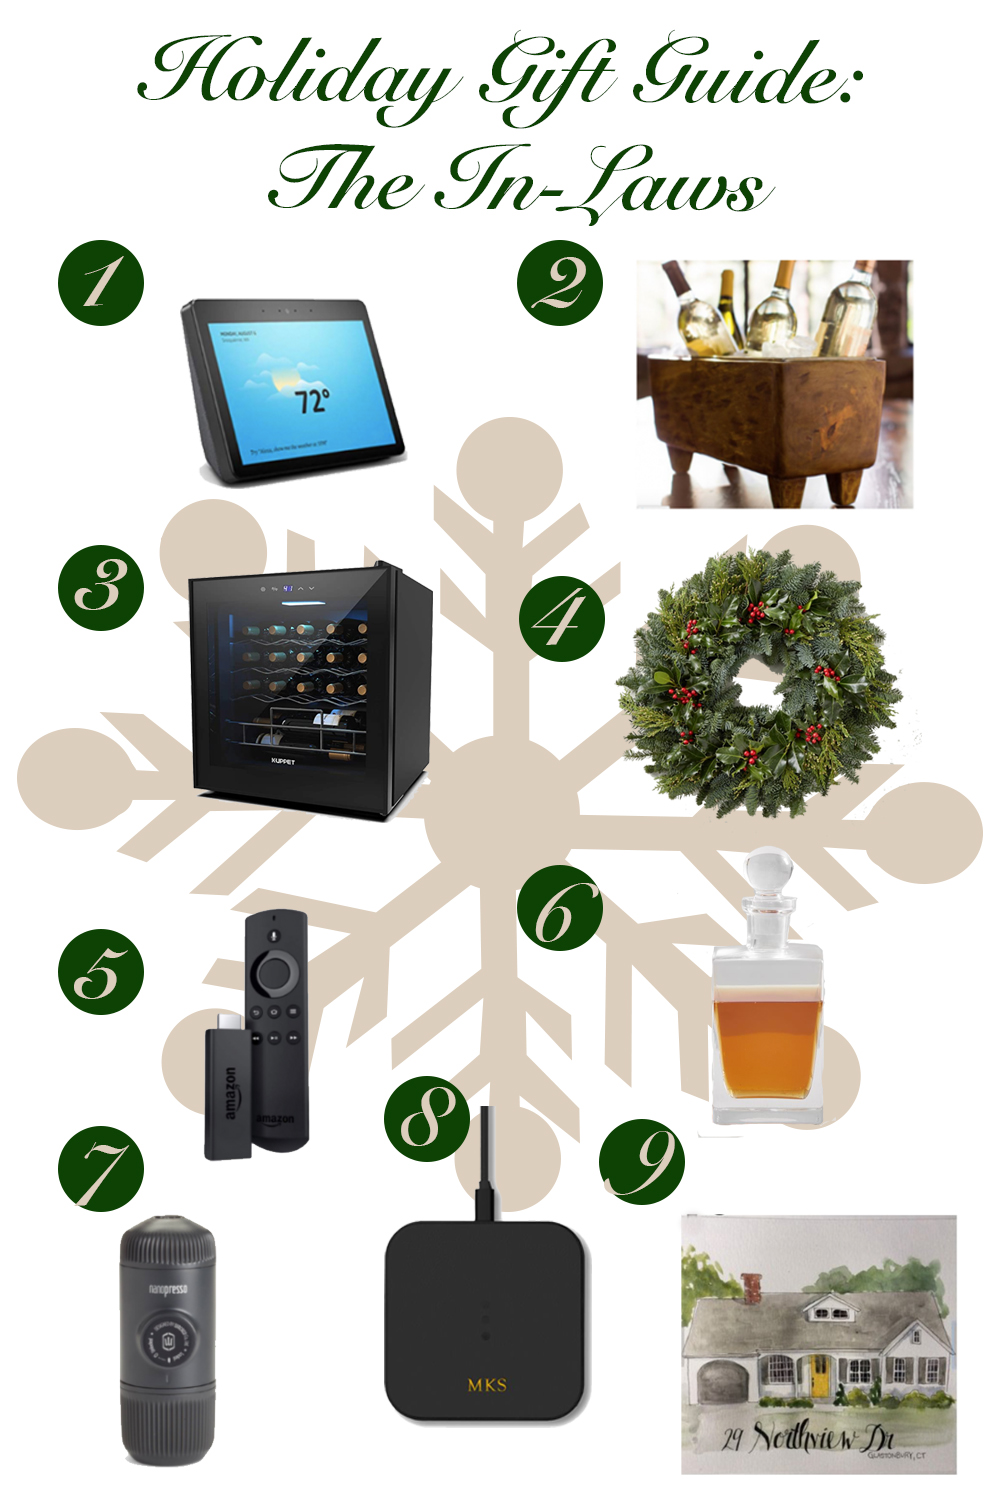 Gift Ideas for In-Laws